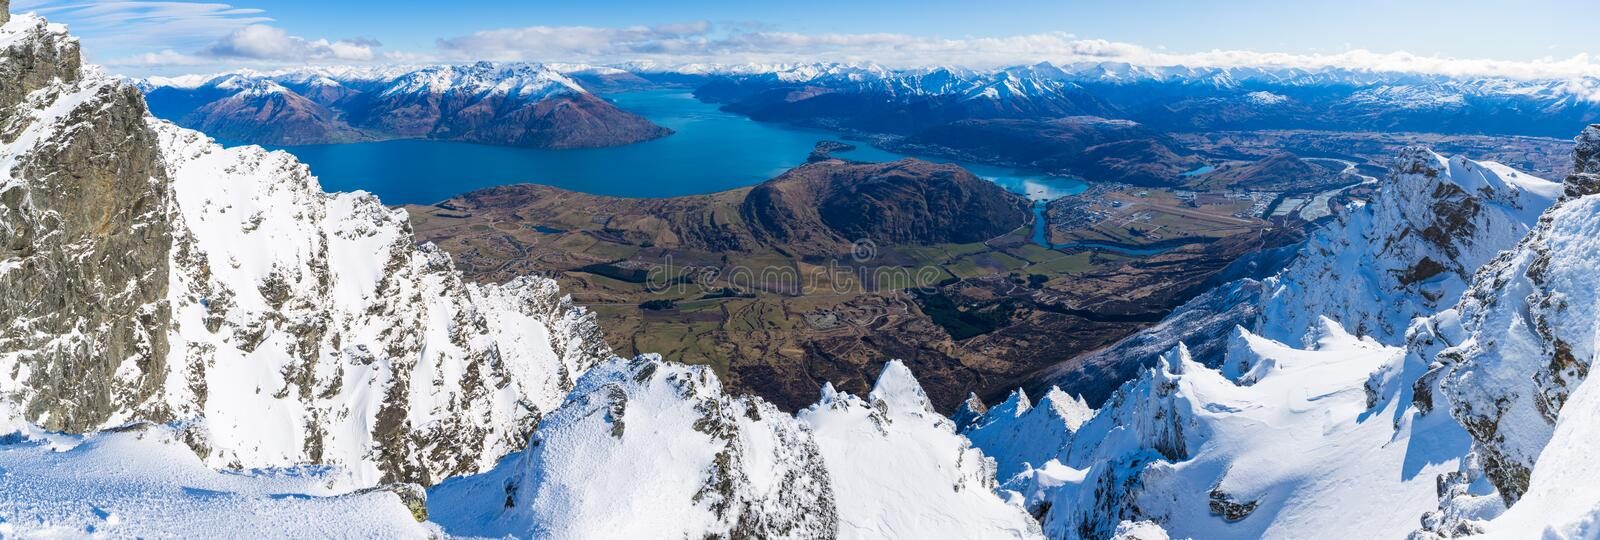 Aerial view of Frankton and Lake WakatipuQueenstown, New Zealand royalty free stock photos